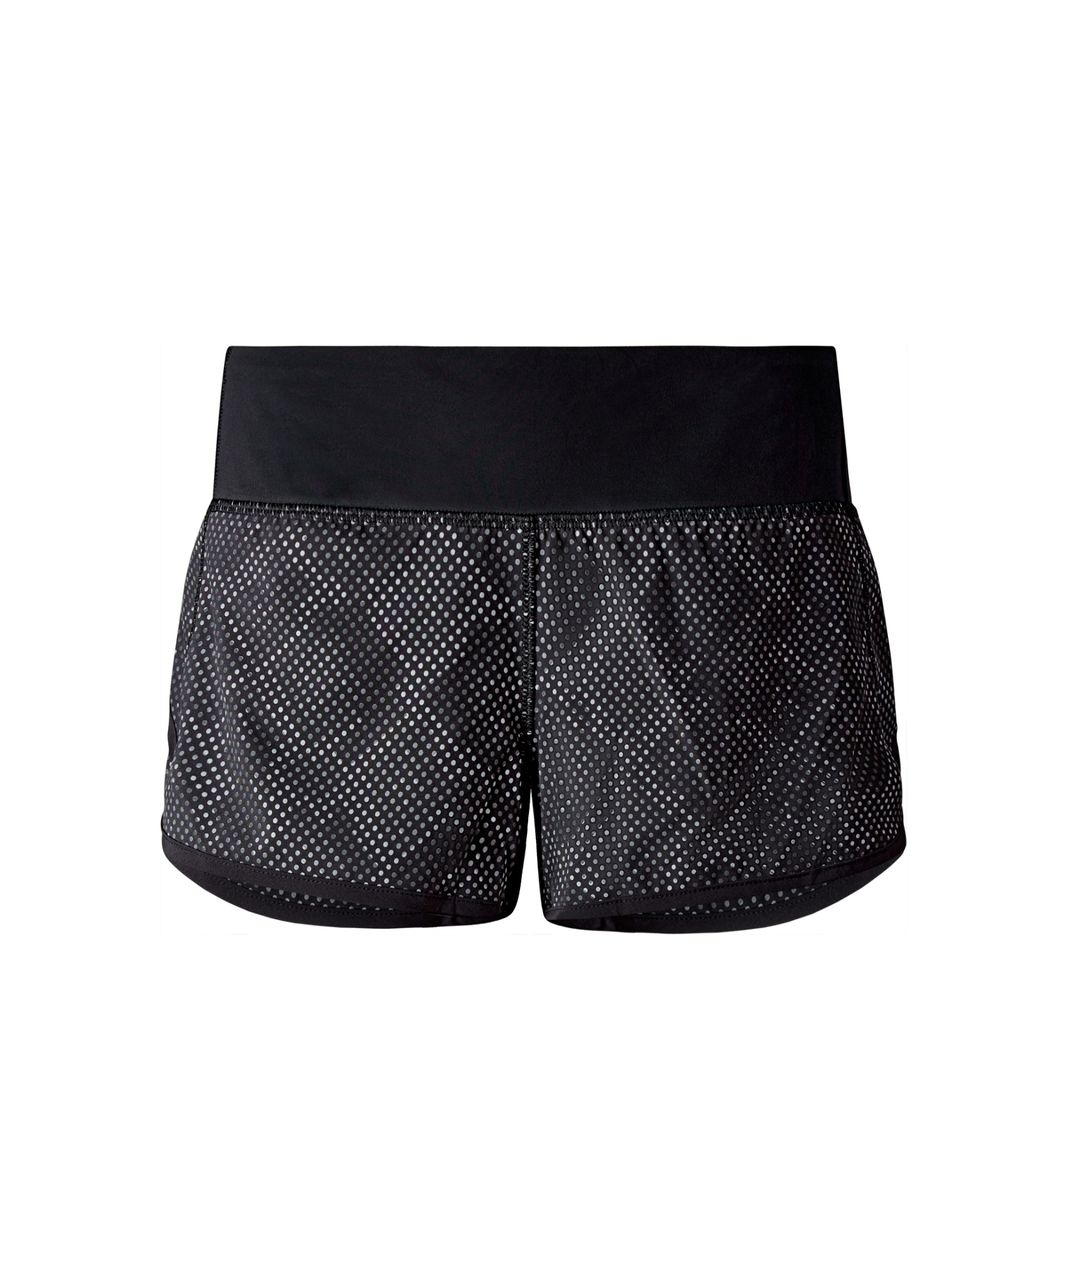 Lululemon Speed Short - Ravish Reptile Silver Black / Black